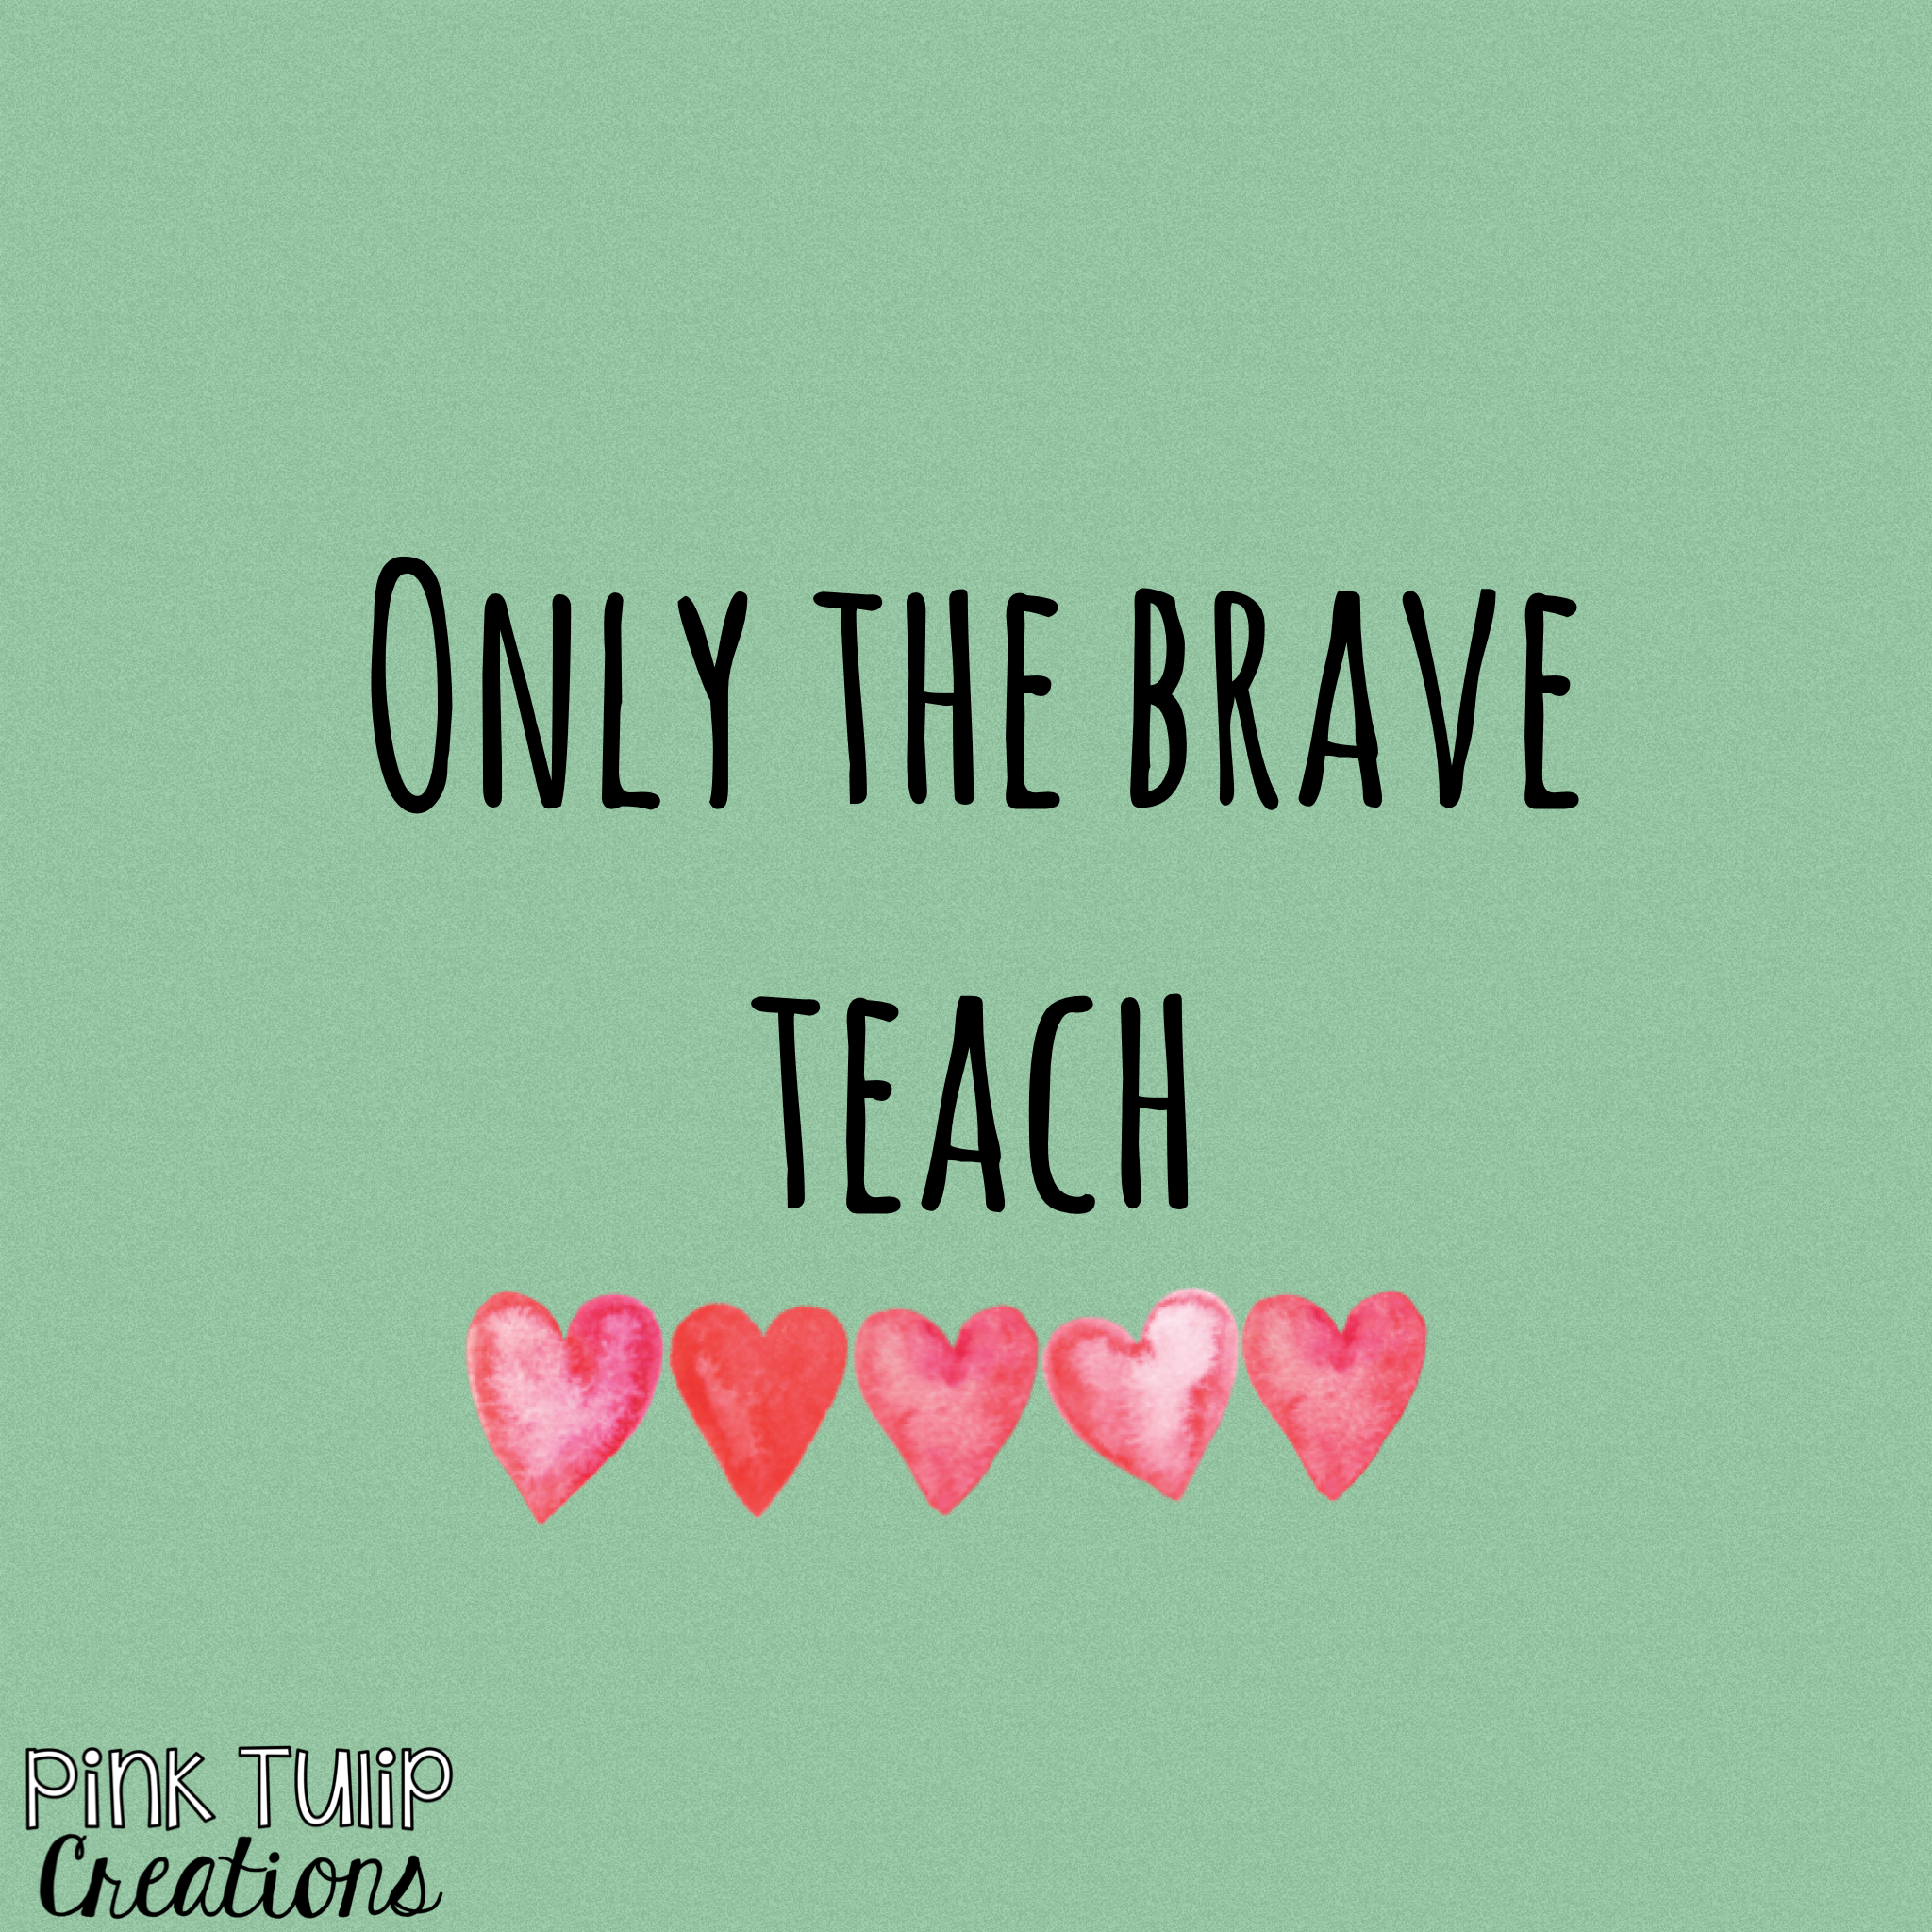 Teaching Quotes Gorgeous Only The Brave Teachteaching Quotes Educational Education